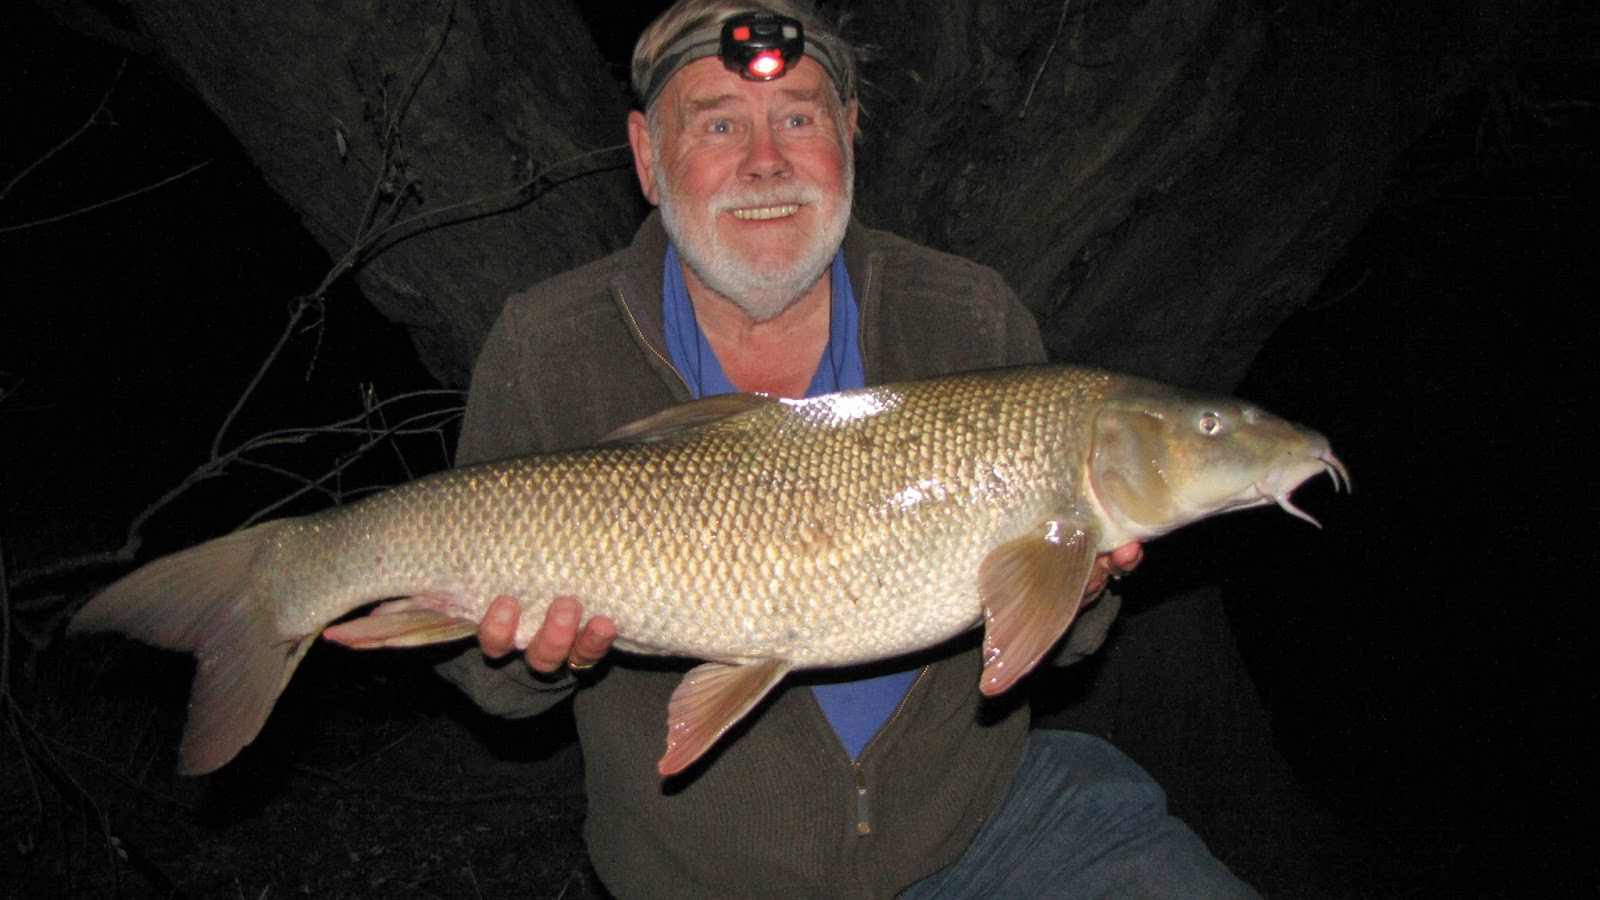 Travelling Man Two Monster Barbel In A Week September 6 Kg Then When I Lifted It After Its Usual Rest Period The Landing Net Was Even More Surprised Again This Very Big